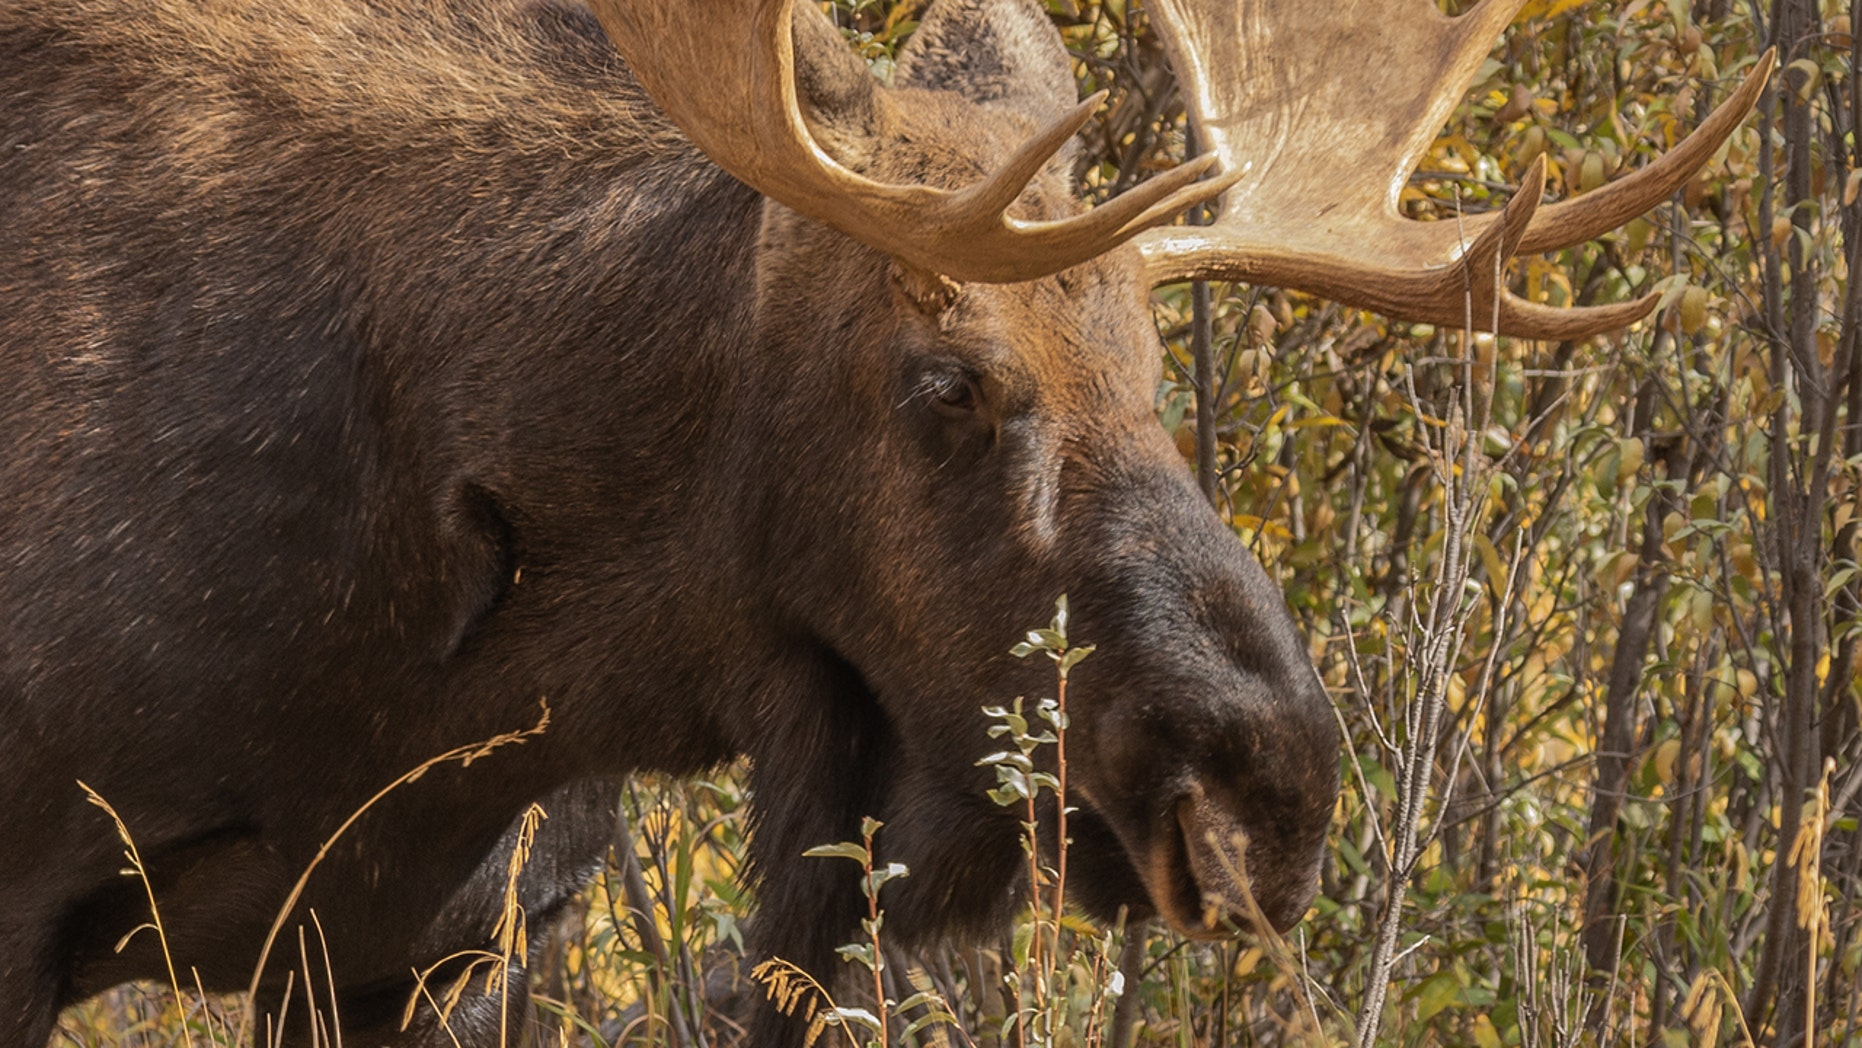 Jim Hall was hunting with a friend when they encountered the Shiras moose on the last valid days of Hall's months-long tag,